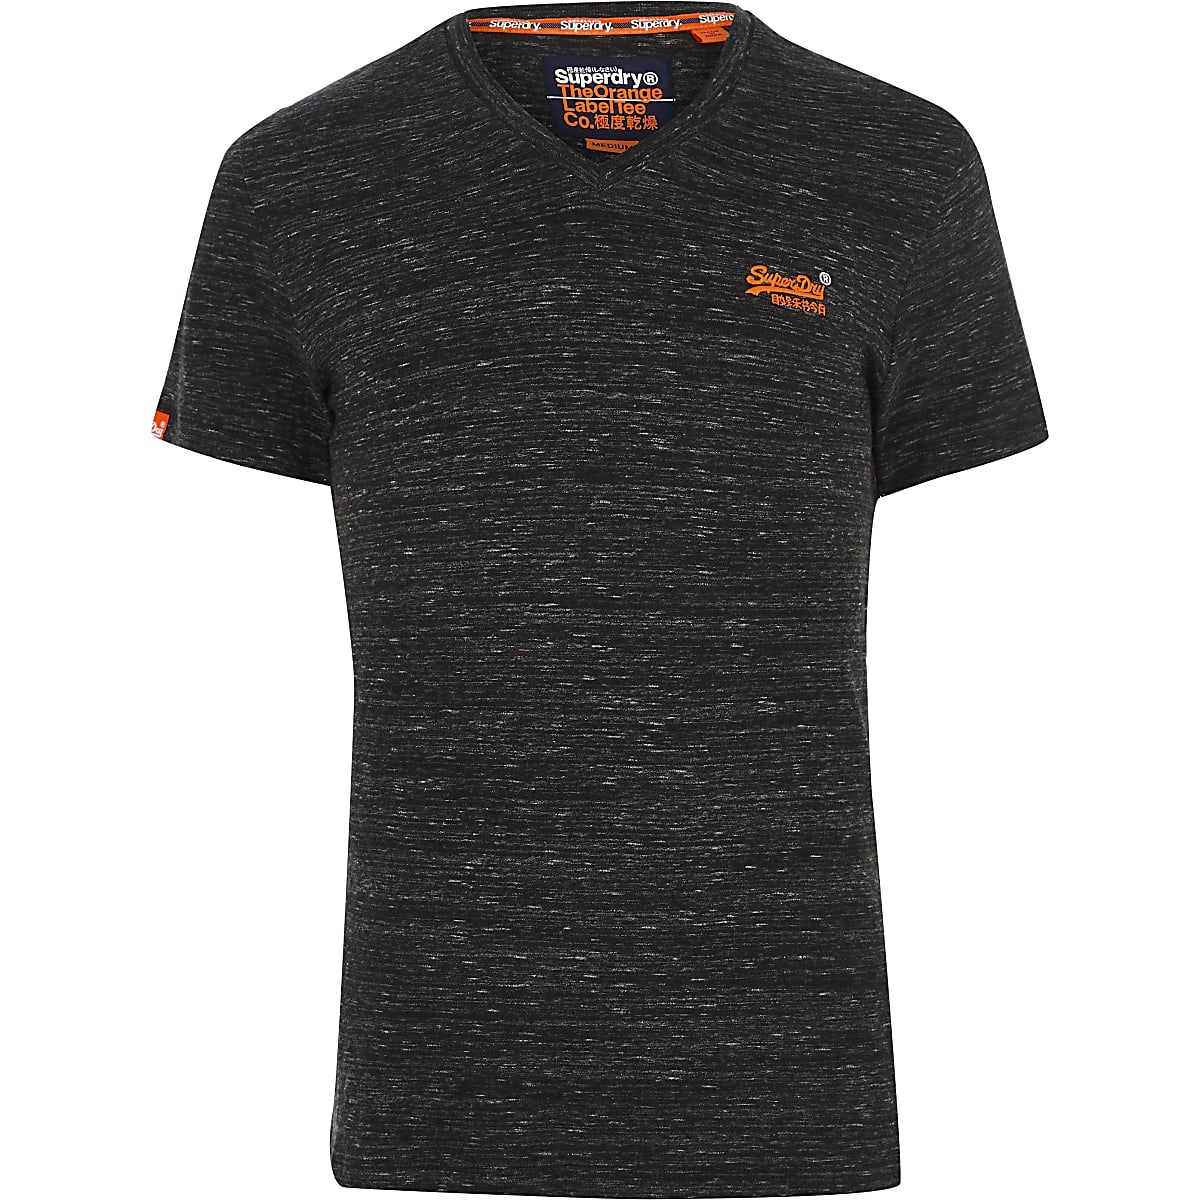 new collection uk cheap sale select for official Superdry black V neck T-shirt